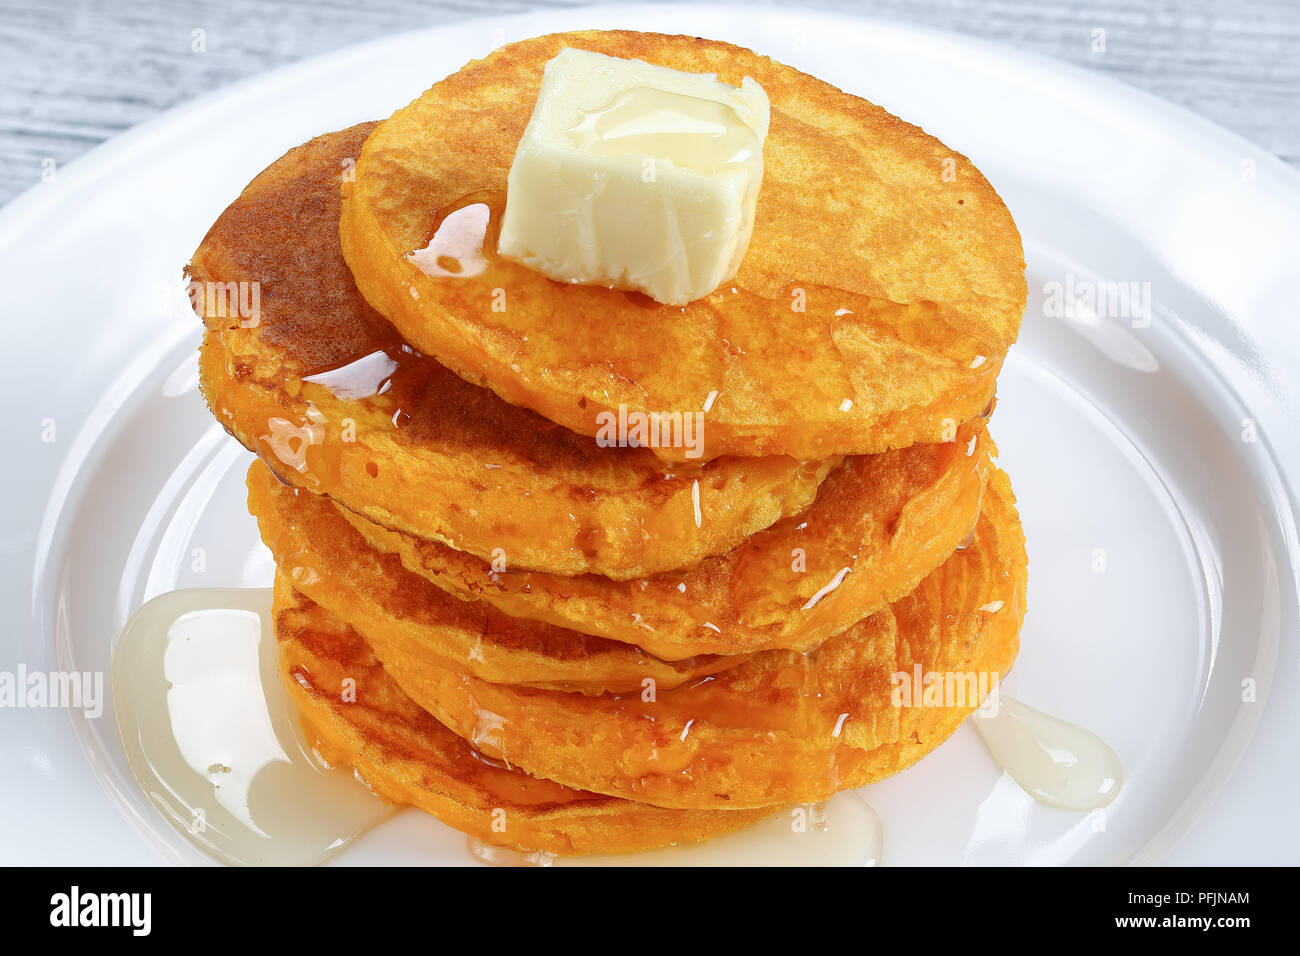 close-up of stack of pumpkin pancakes topped with piece of butter and pour over with honey on white plate on kitchen tablecloth, view from above Stock Photo